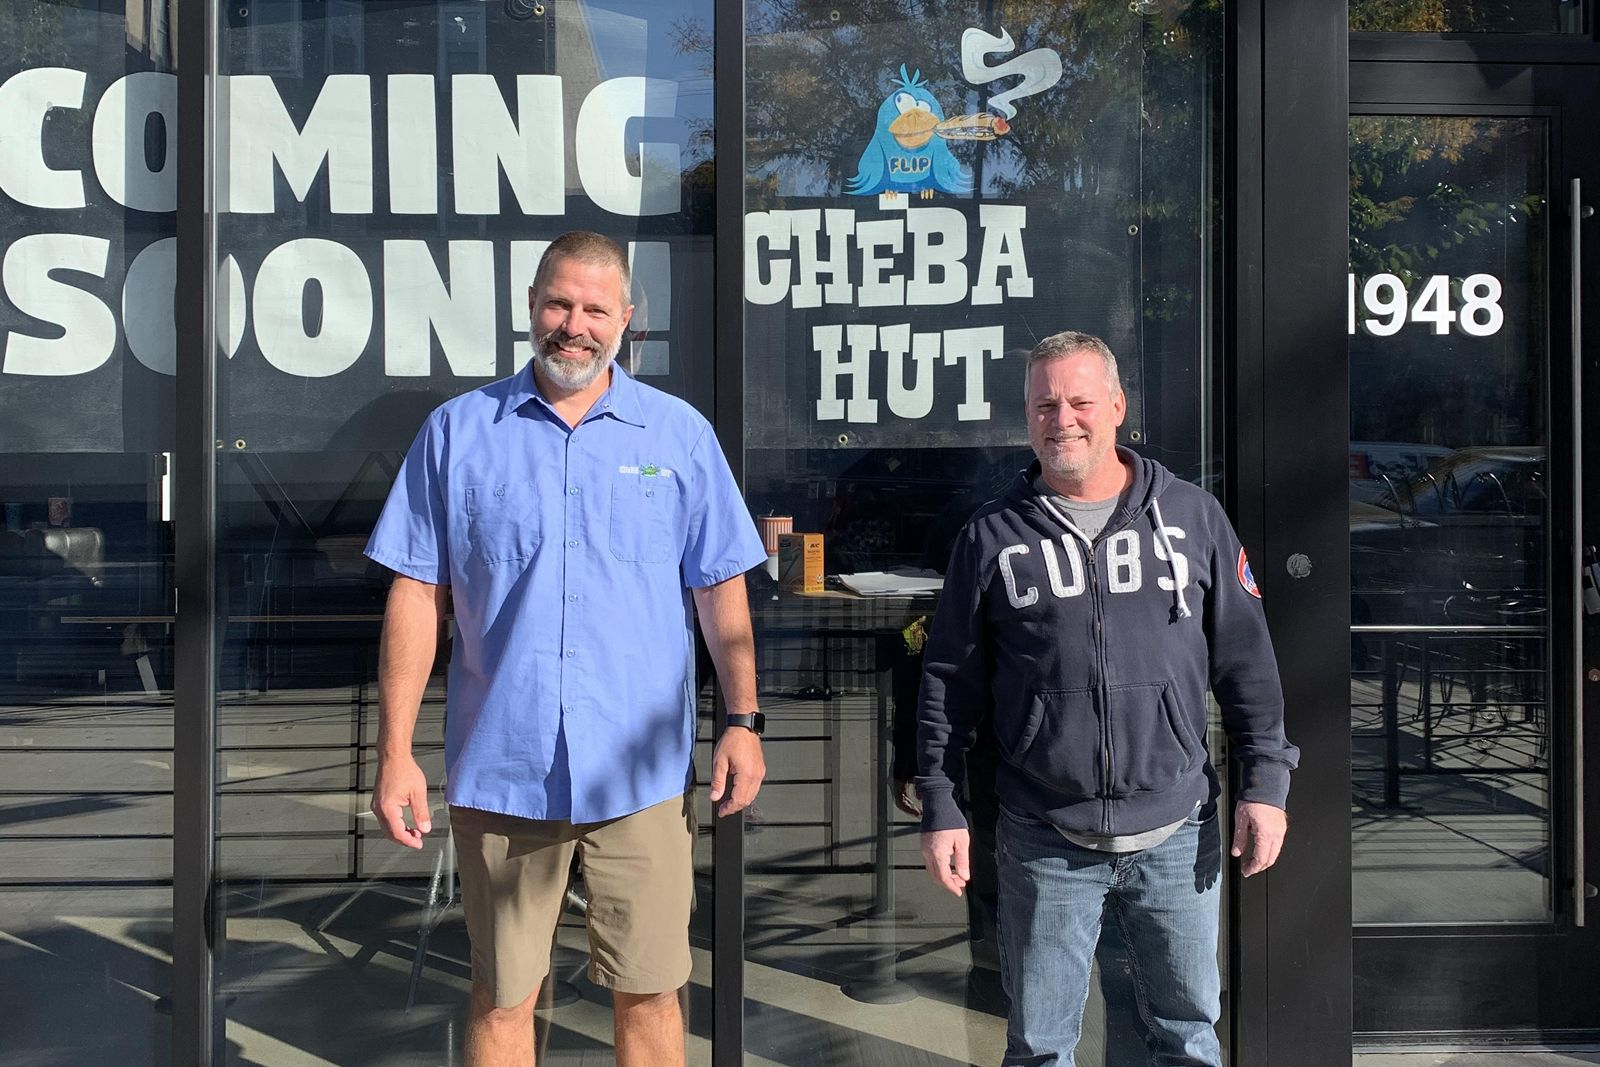 Cheba Hut to Celebrate Opening First Location in Illinois on October 19